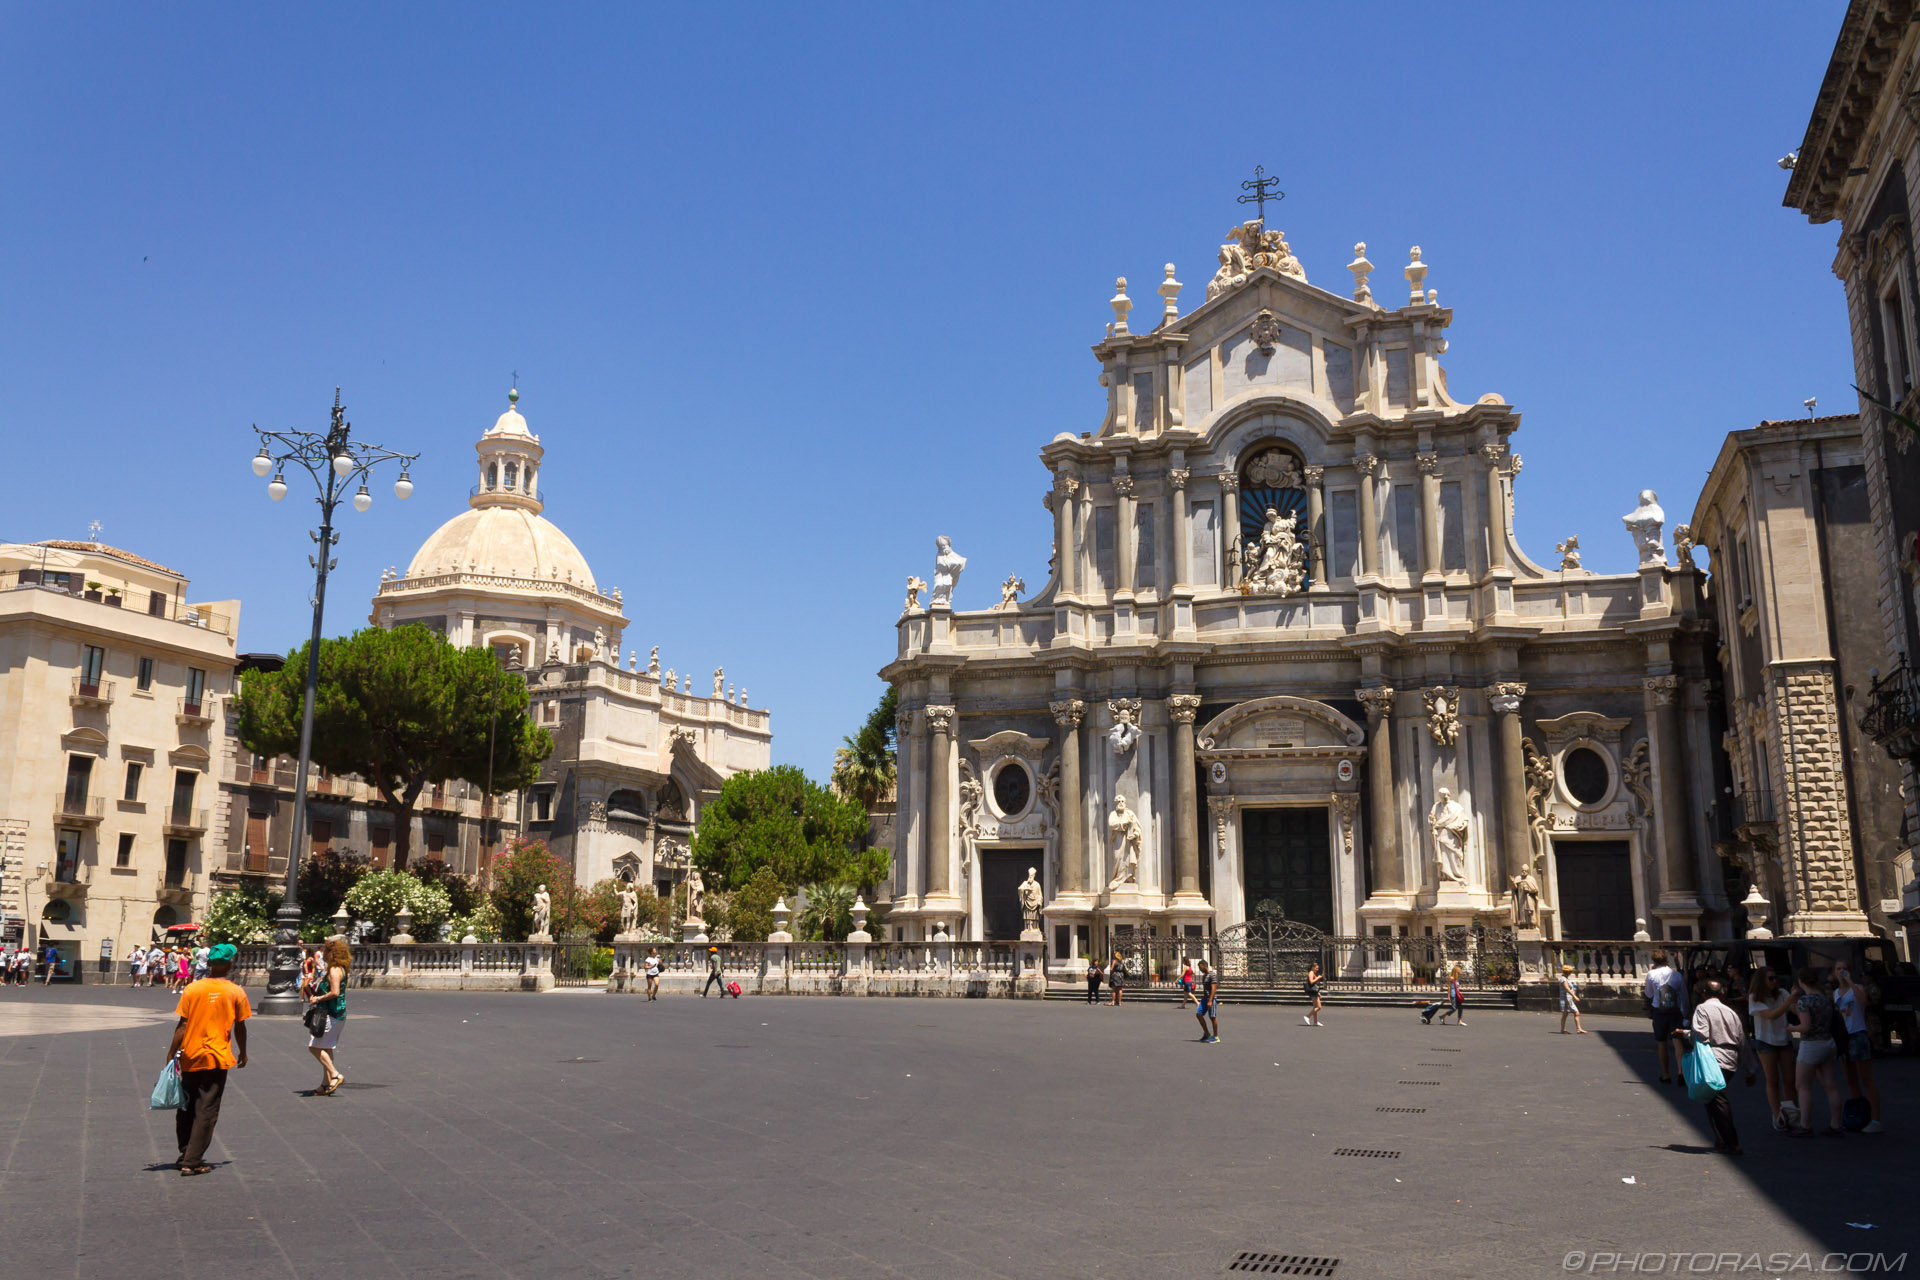 https://photorasa.com/catania/catania-square/